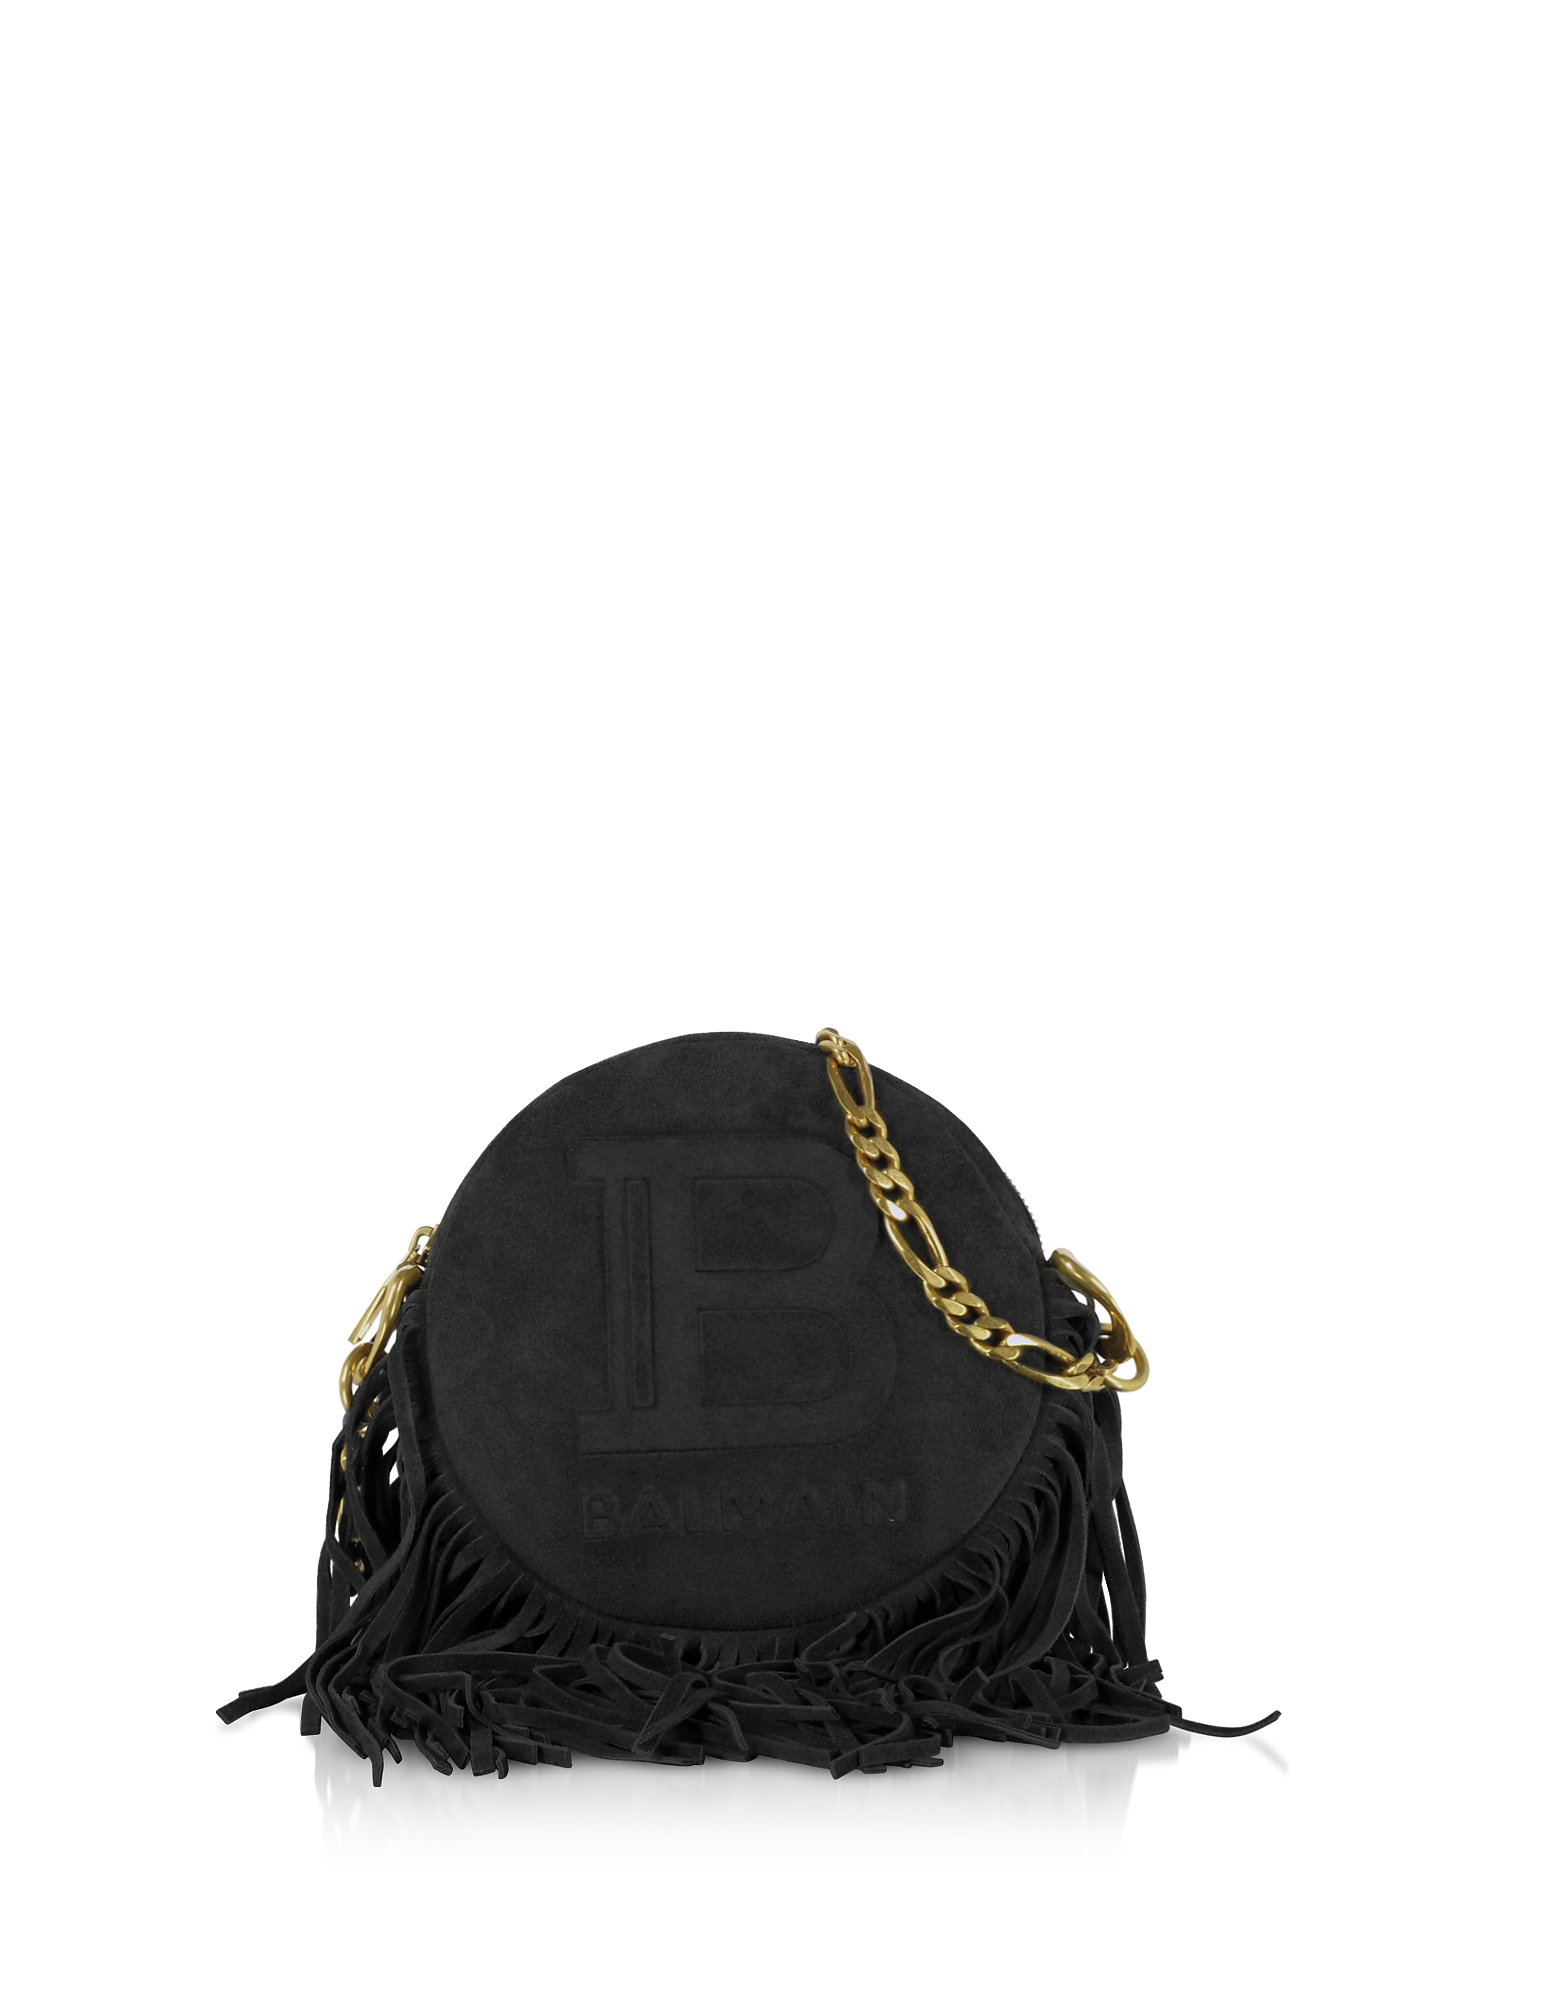 Suede, Leather and Fringes 18 Disco Bag, Black